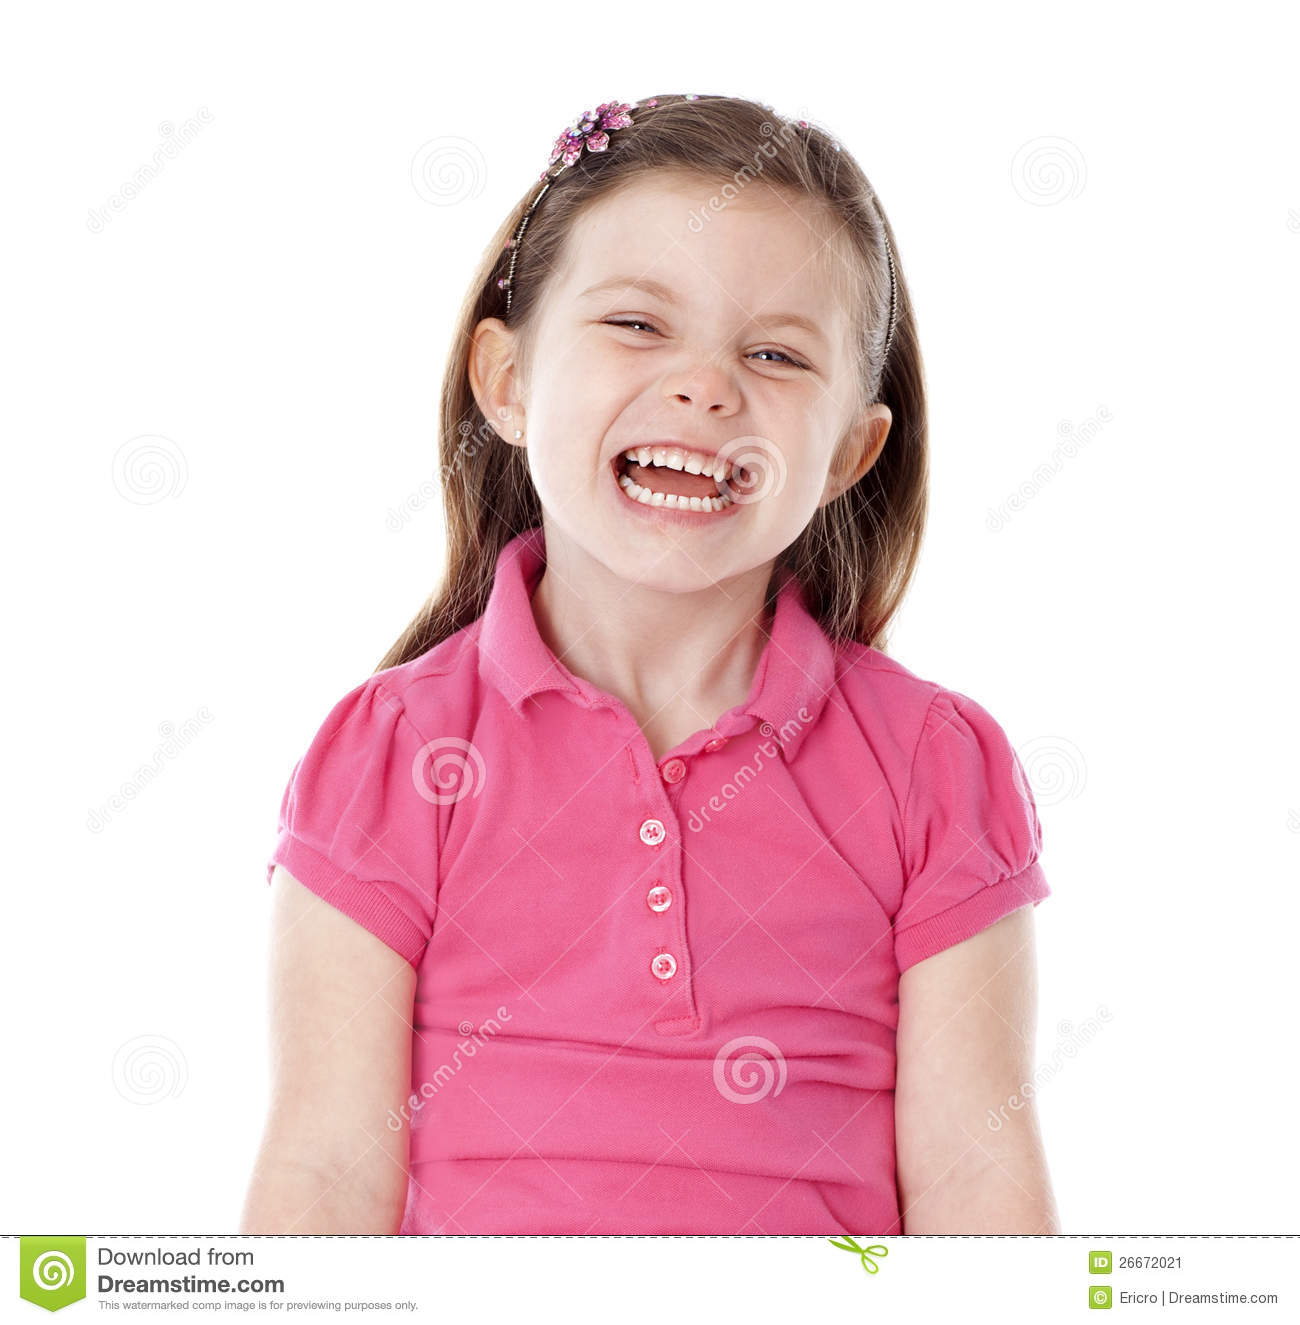 Young Girl Giggling Stock Image - Image: 26672021